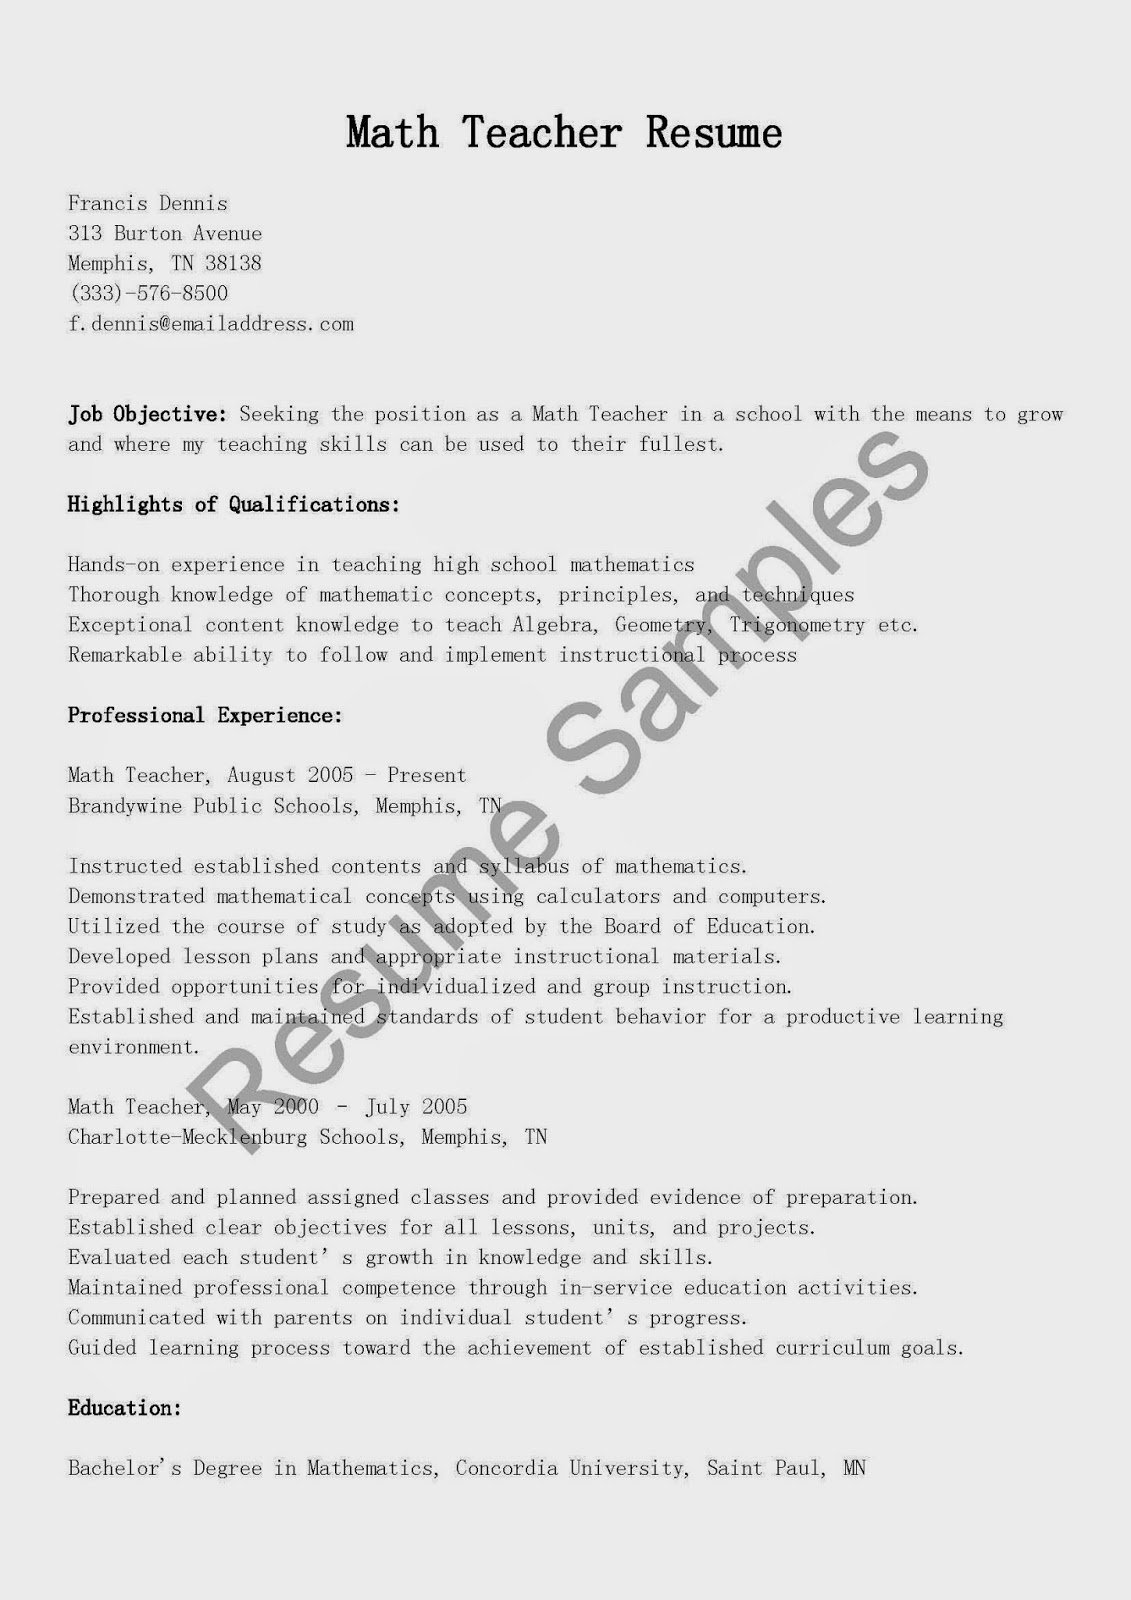 teacher resume examples objective customer service resume example teacher resume examples objective the resume objective examples statements and writing tips resume samples math teacher